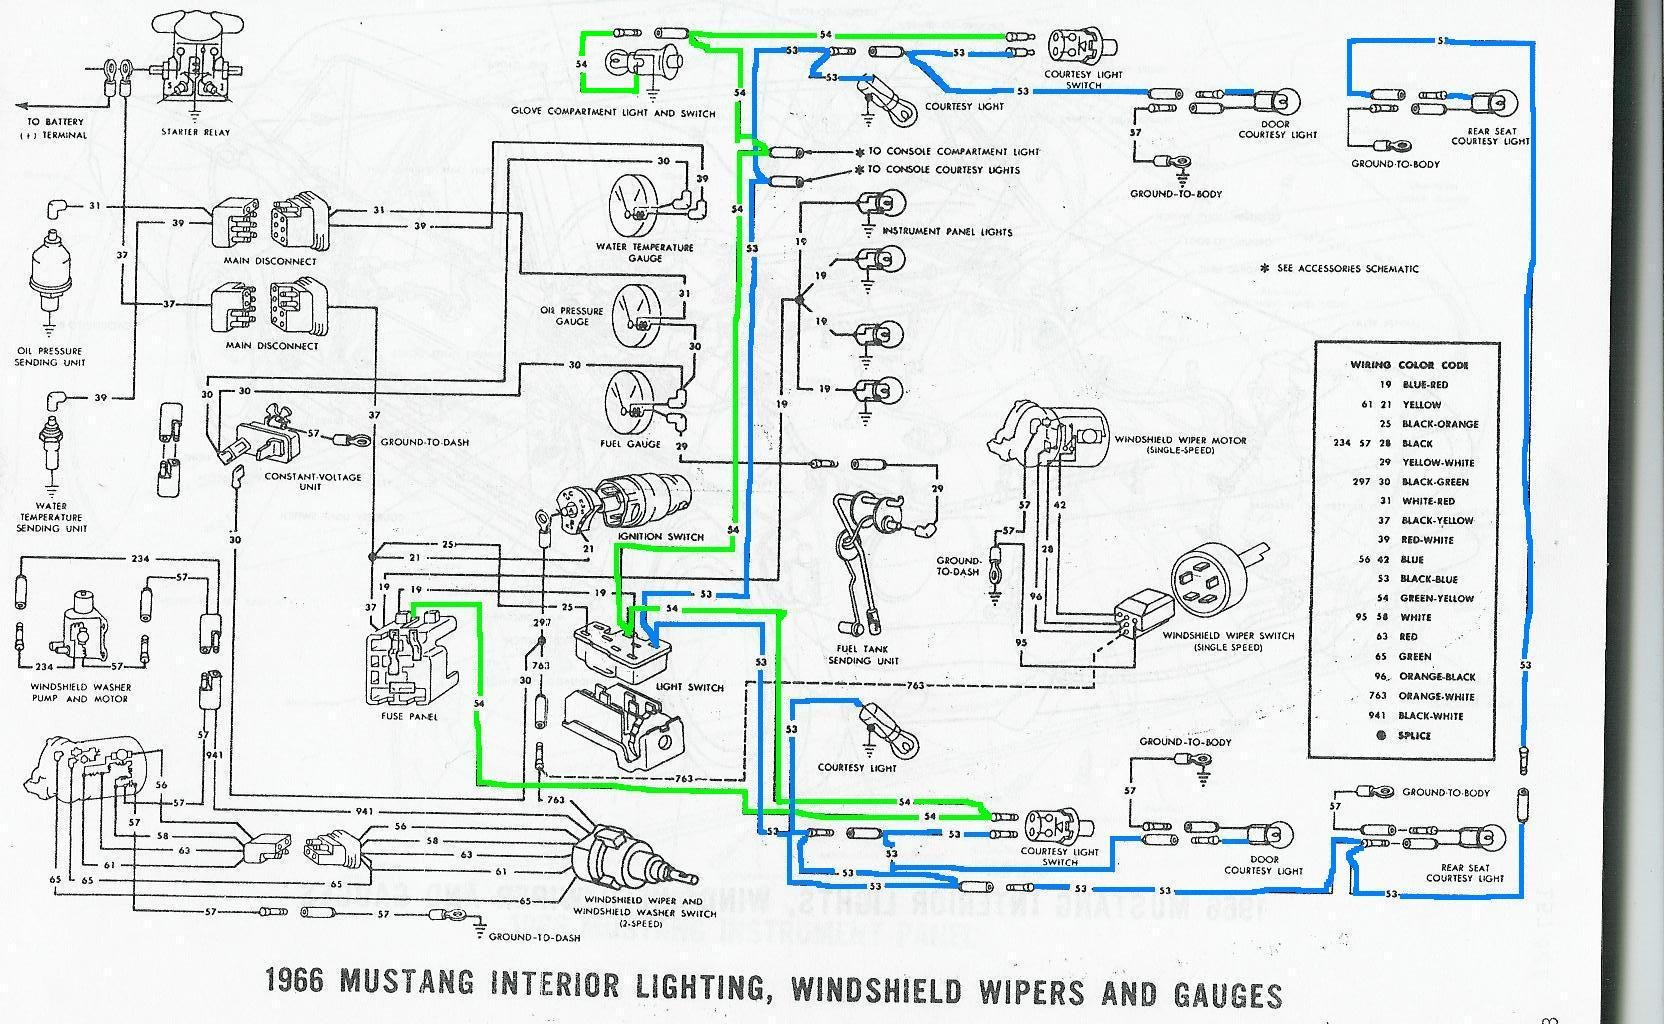 66 Mustang Wiring Diagram Free Libraries 68 Dash Picture 1966 Courtesy Light Diagrams Sitecourtesy Lights Not Working Ford Forum